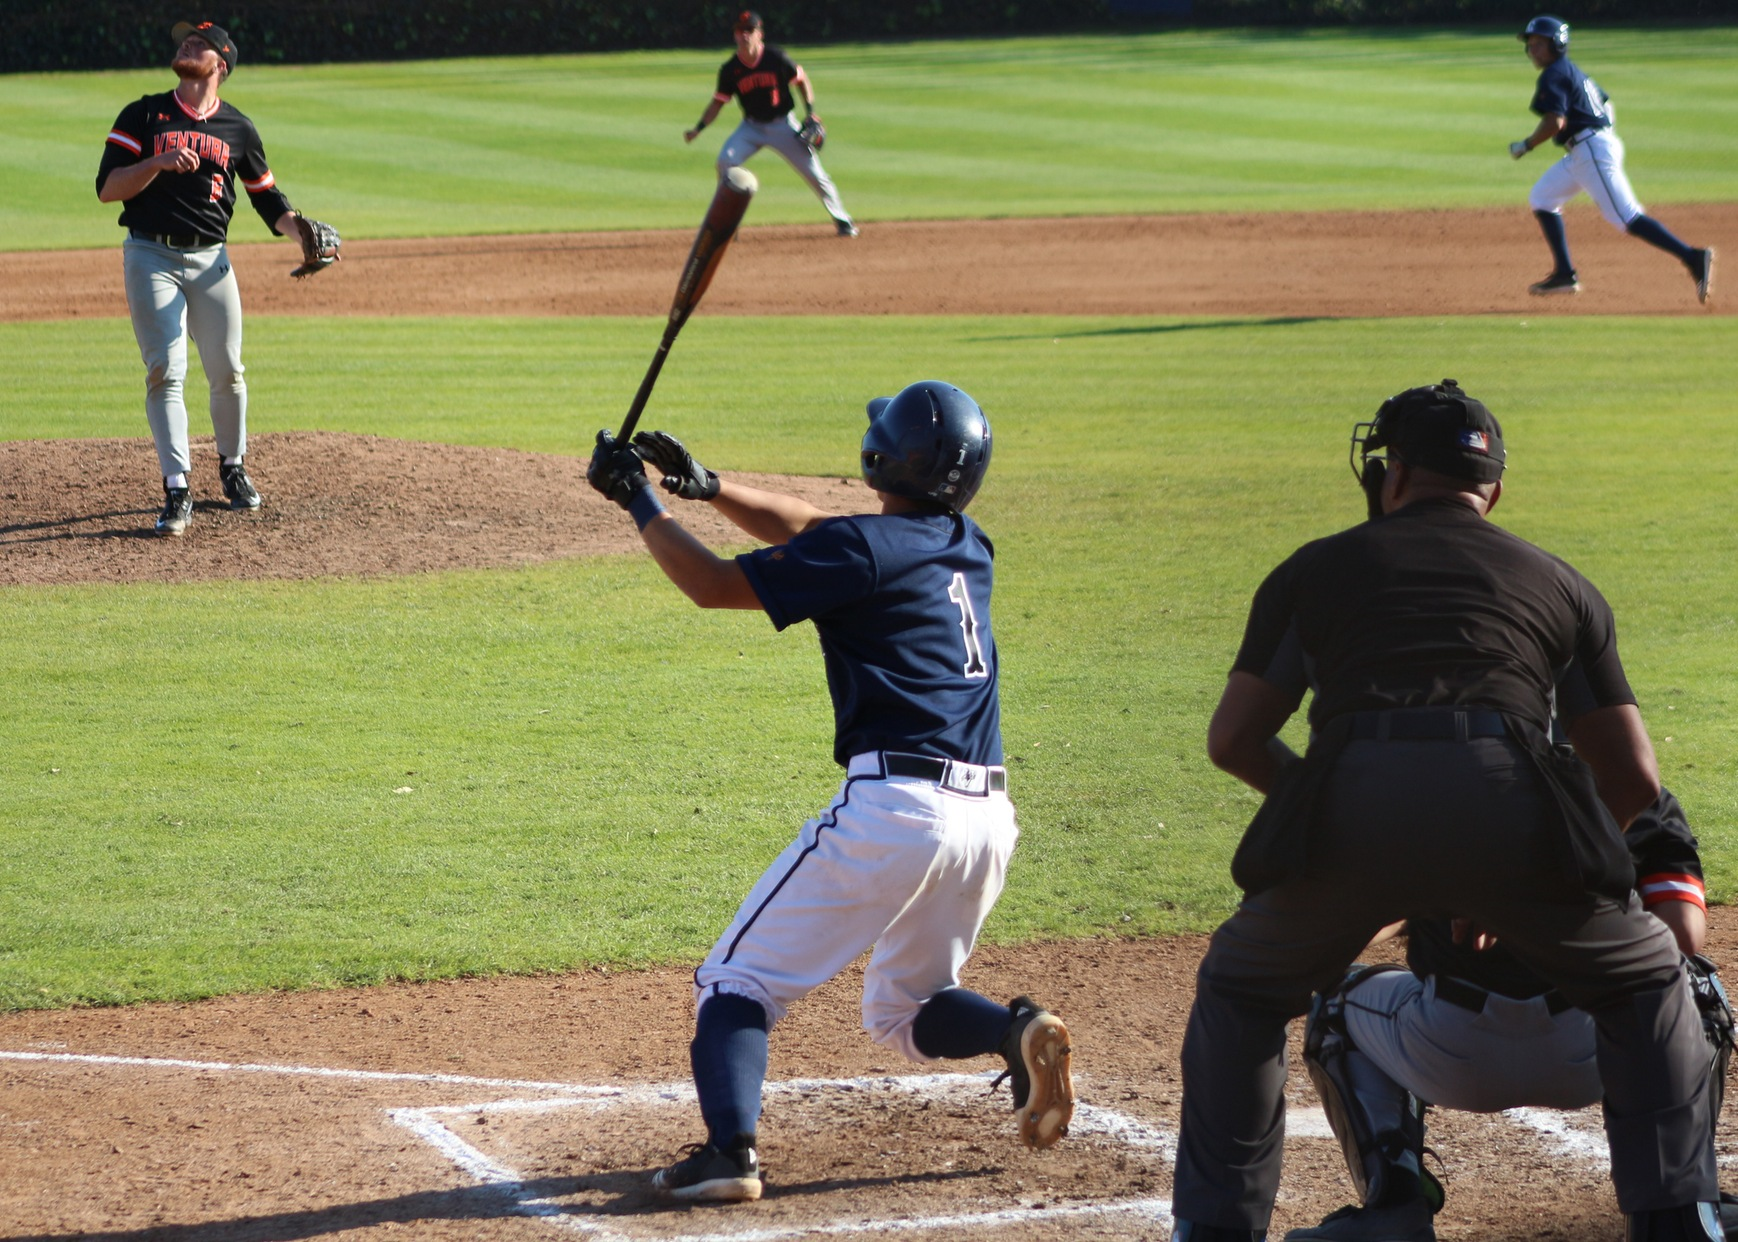 Teppei Fukuda goes yard, driving in 3 runs. Image: Richard Miranda